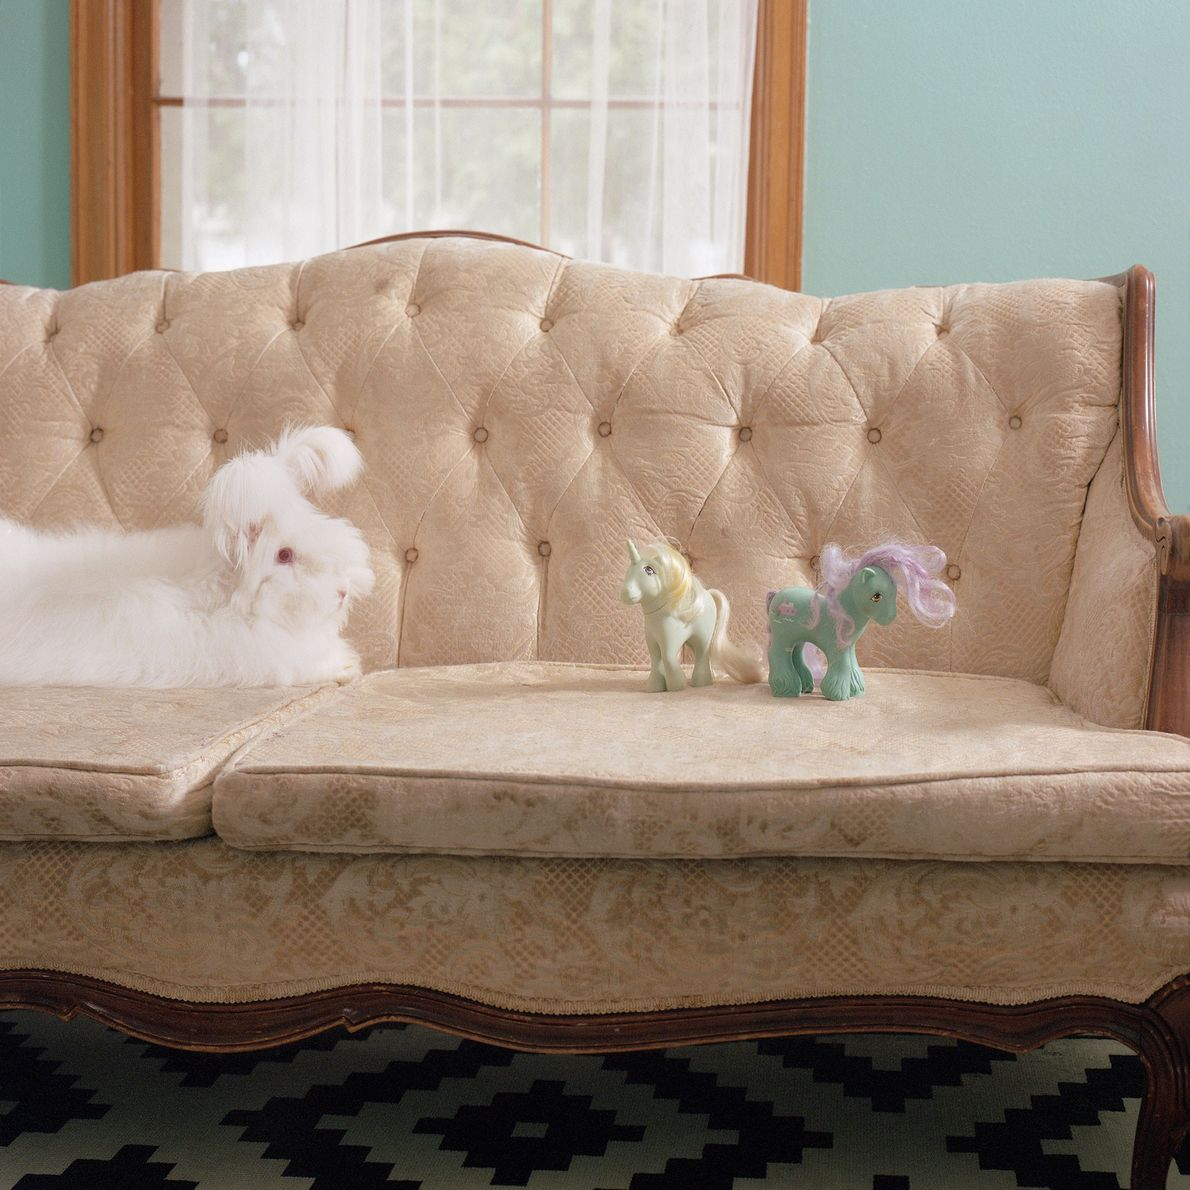 Finnian, an Angora rabbit (posing here on the couch), shares the house with two other Angoras. ...